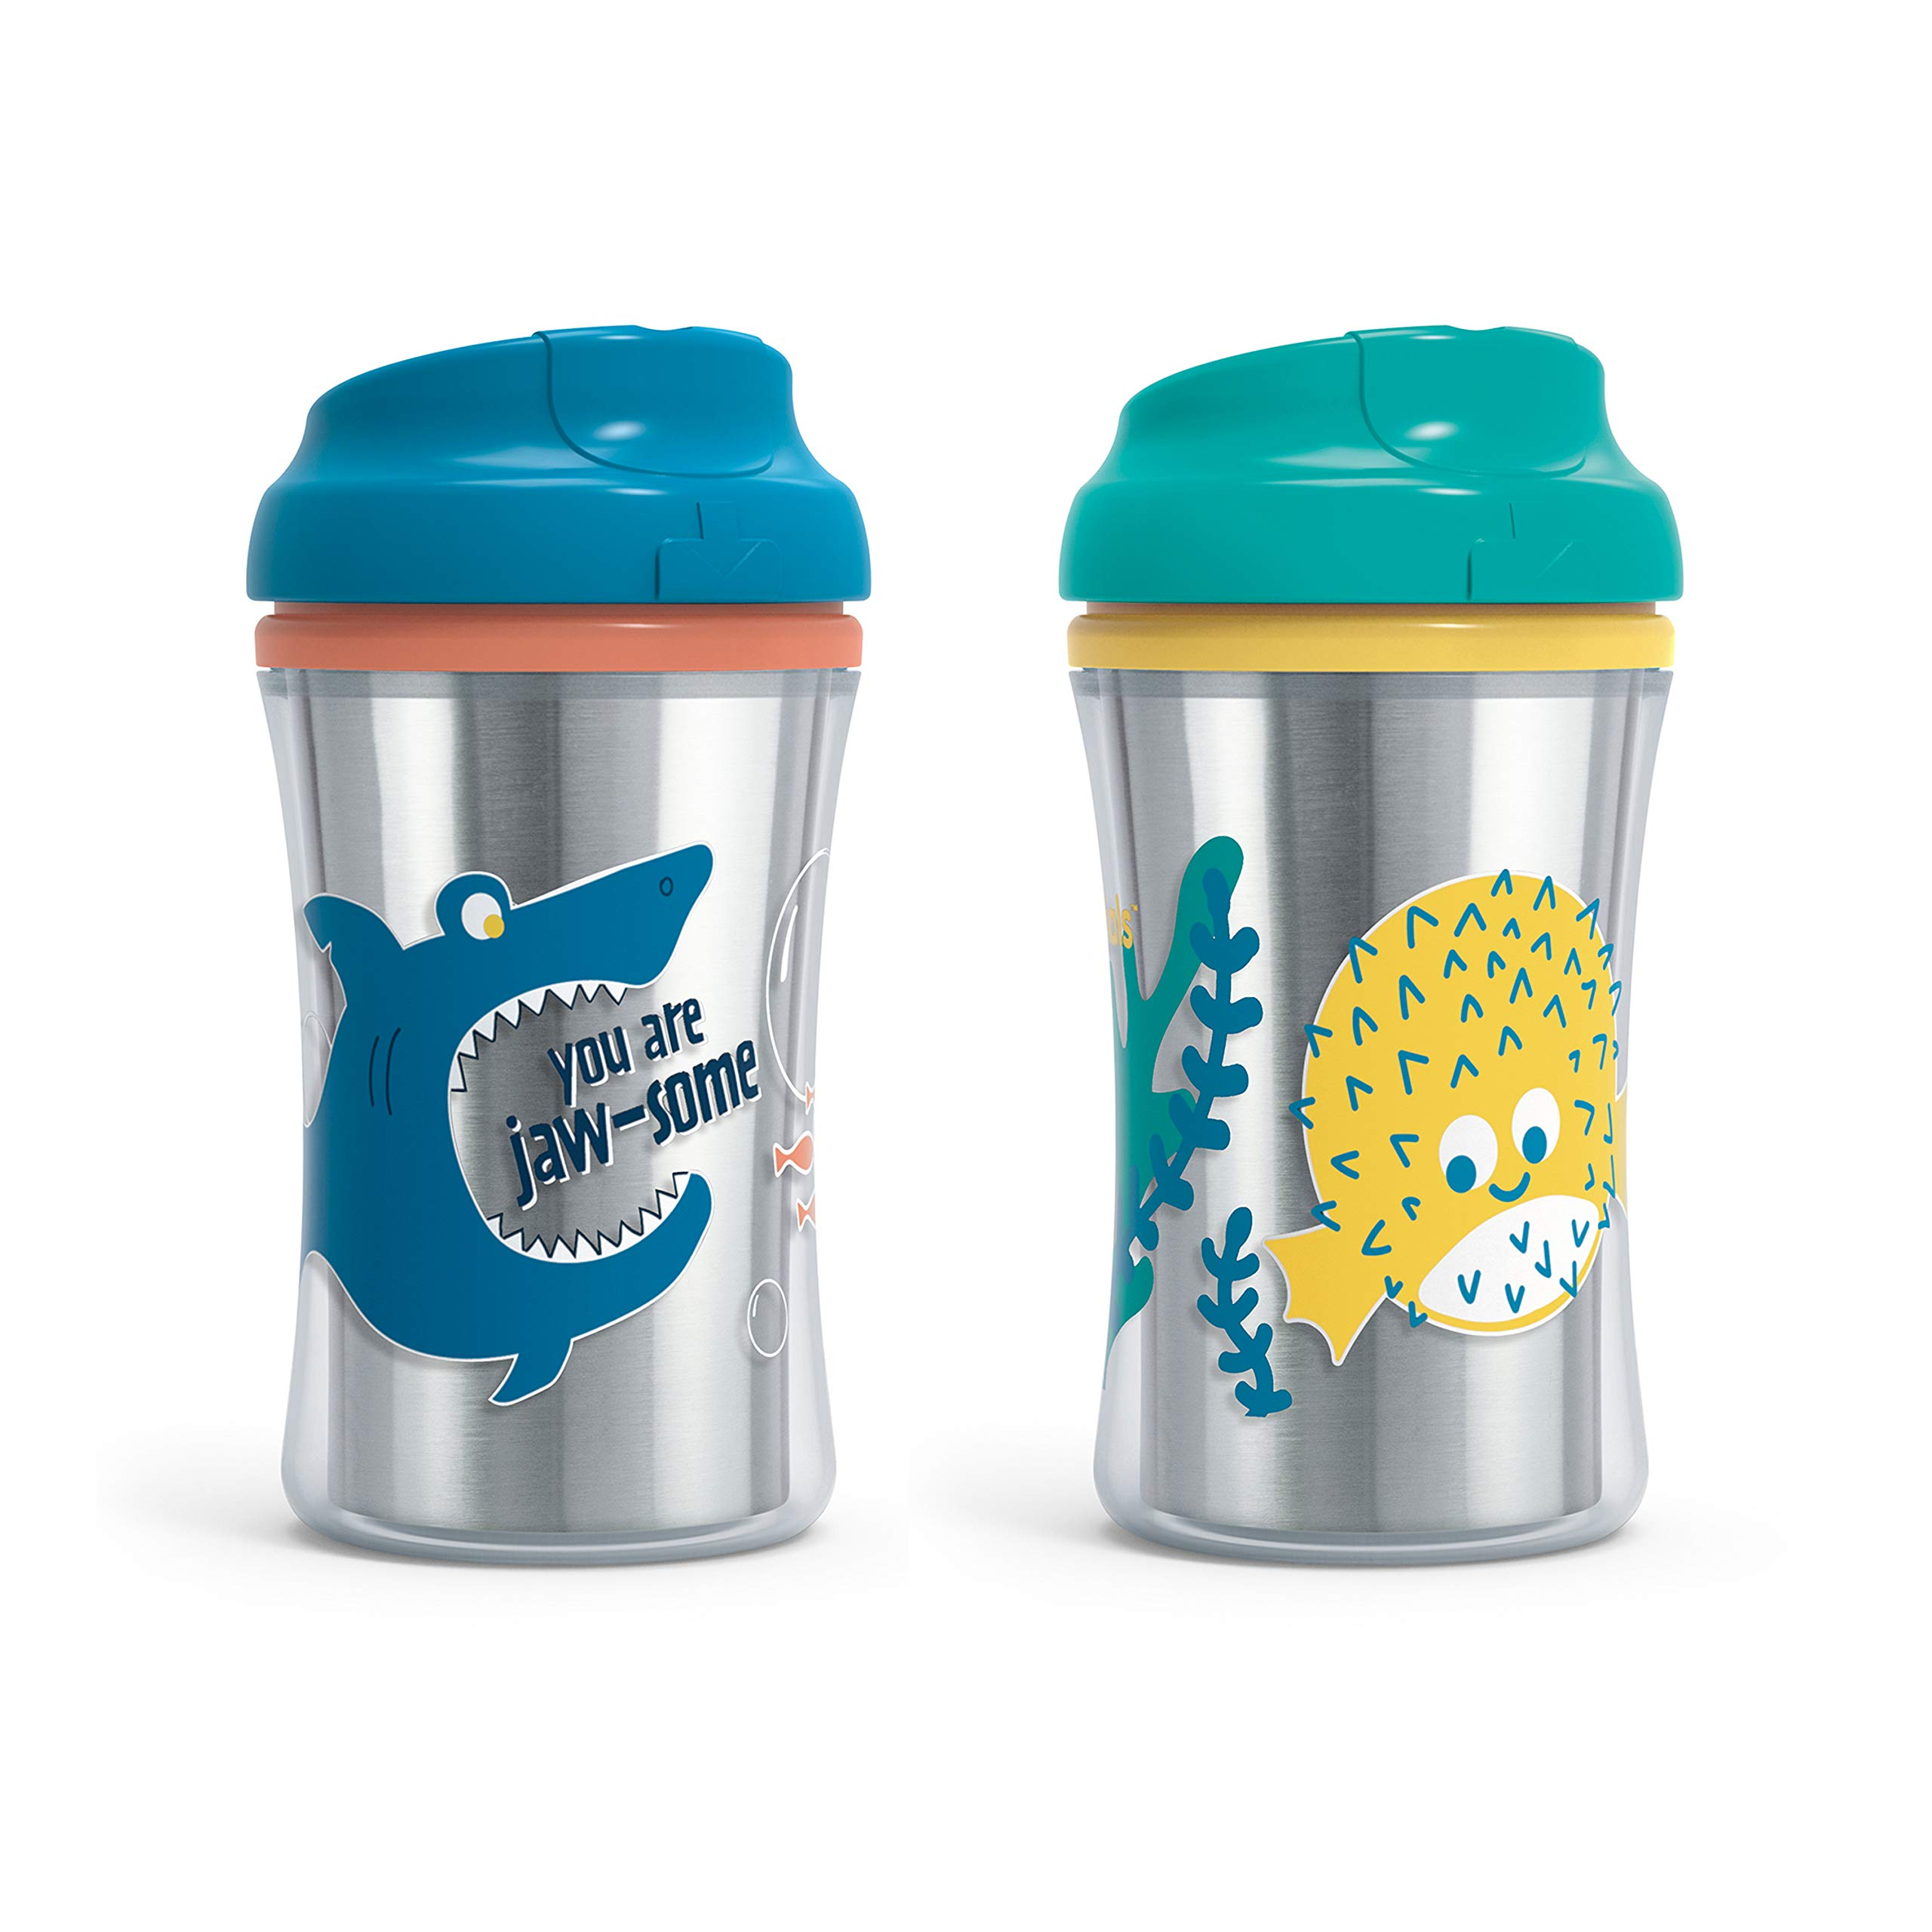 First Essentials by NUK Fun Grips Hard Spout Sippy Cup in Assorted Colors and Patterns, 9 oz., 2-Pack